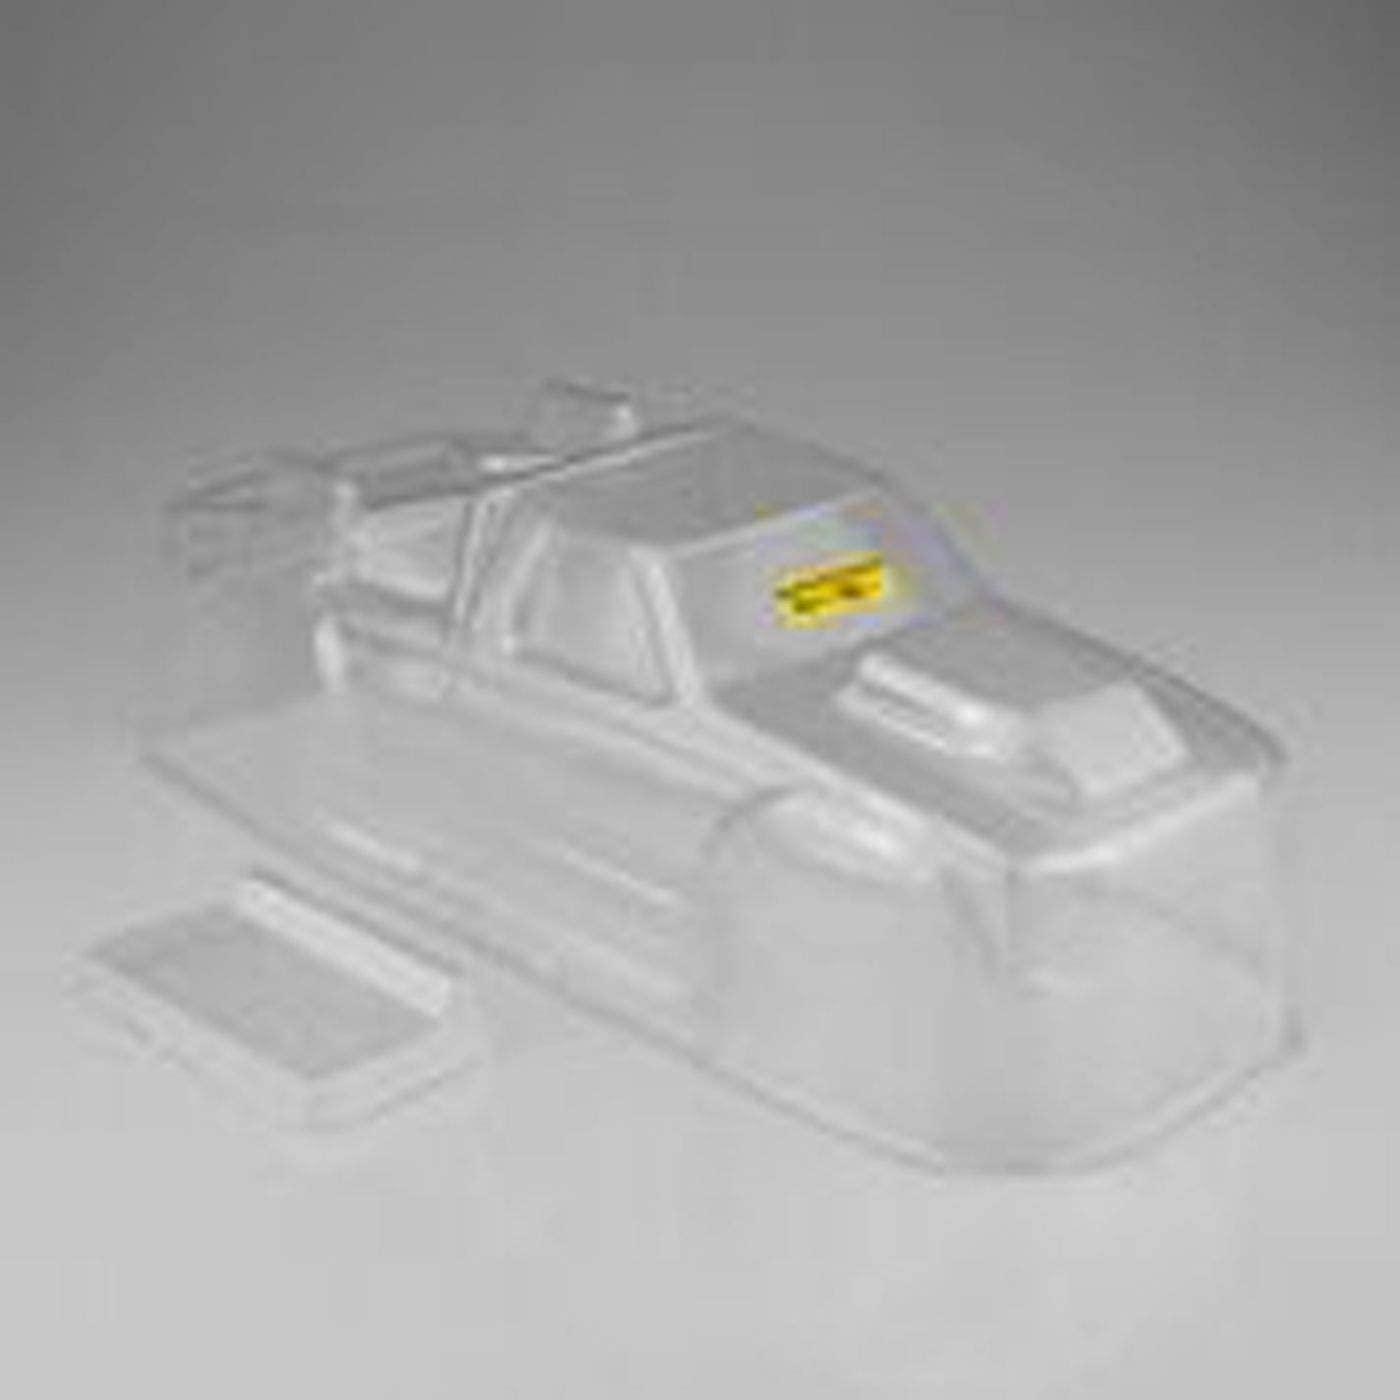 Rustler VXL J Concepts Inc 1993 Ford F-150 Clear Body with Spoiler JCO0375